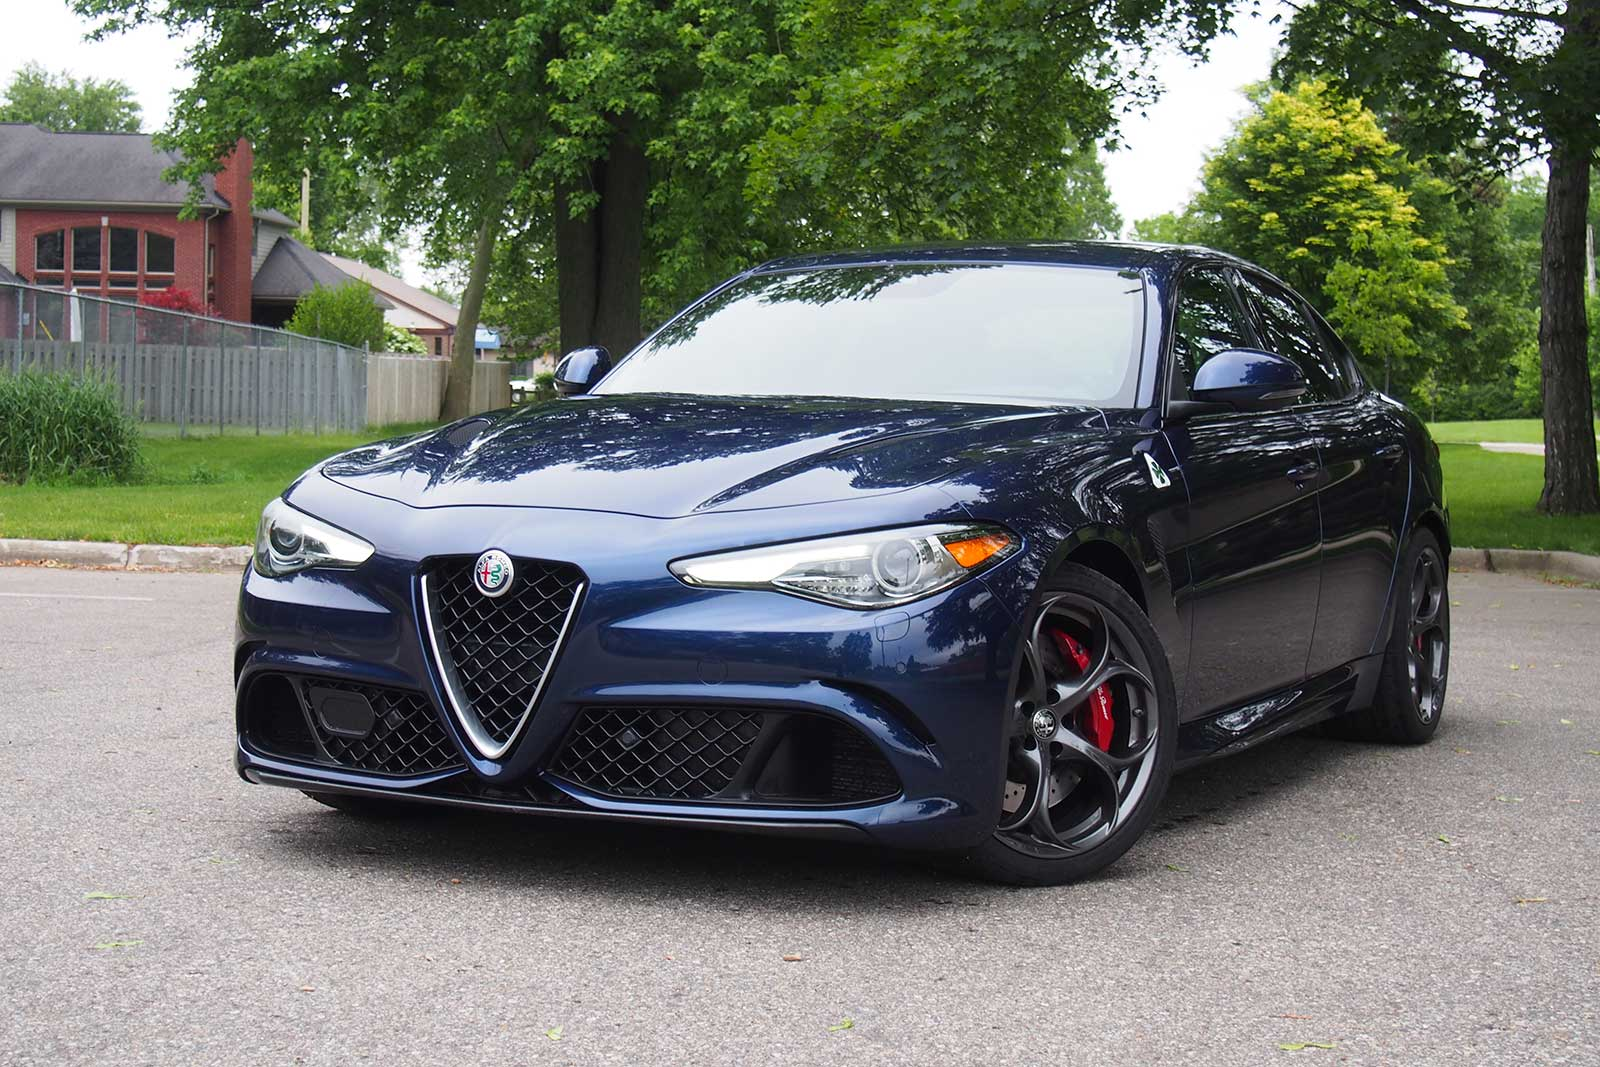 Alfa romeo giulietta 2017 top speed 15